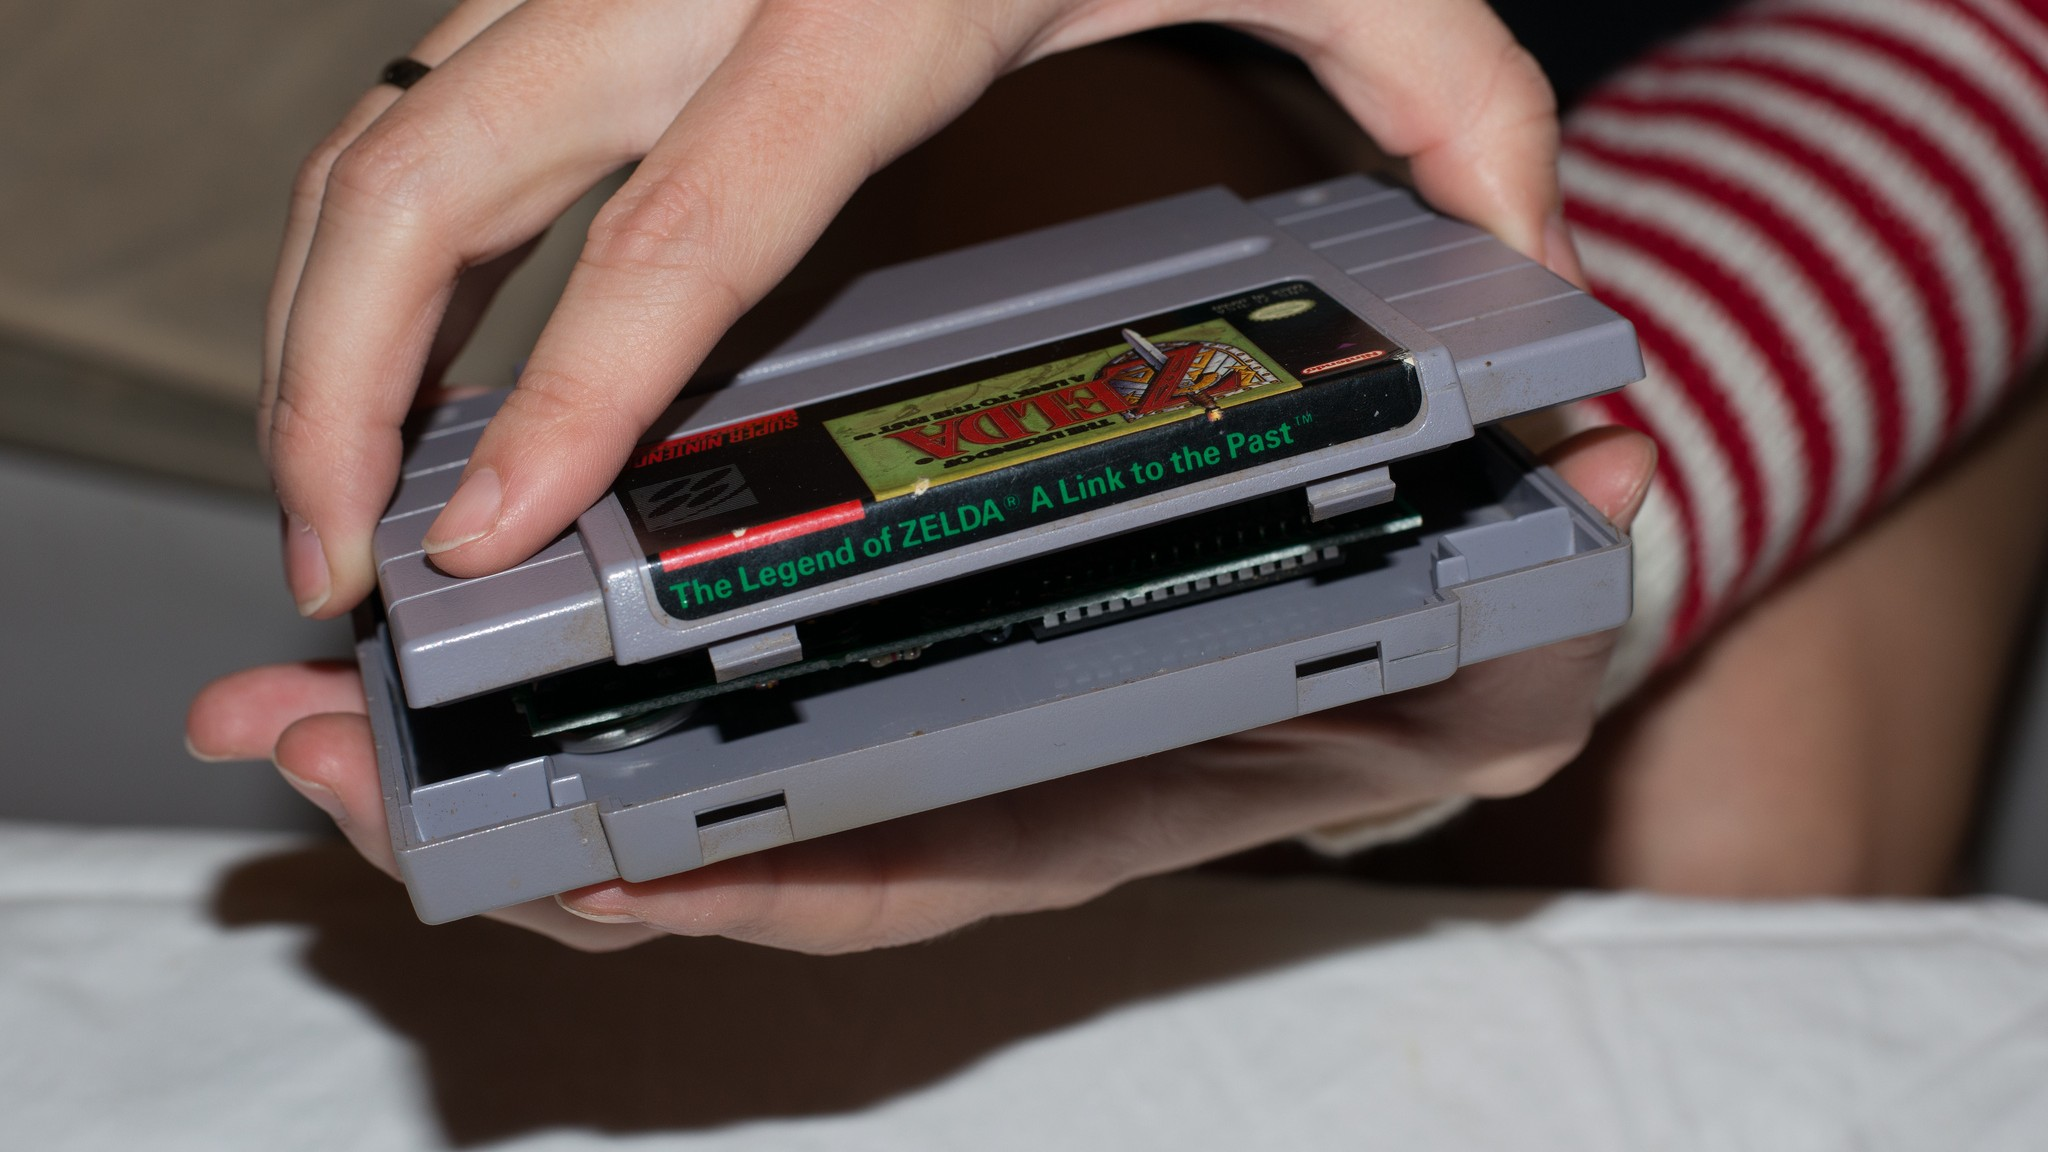 Museums Can Now Legally Jailbreak Game Consoles, But Gamers Aren't Allowed